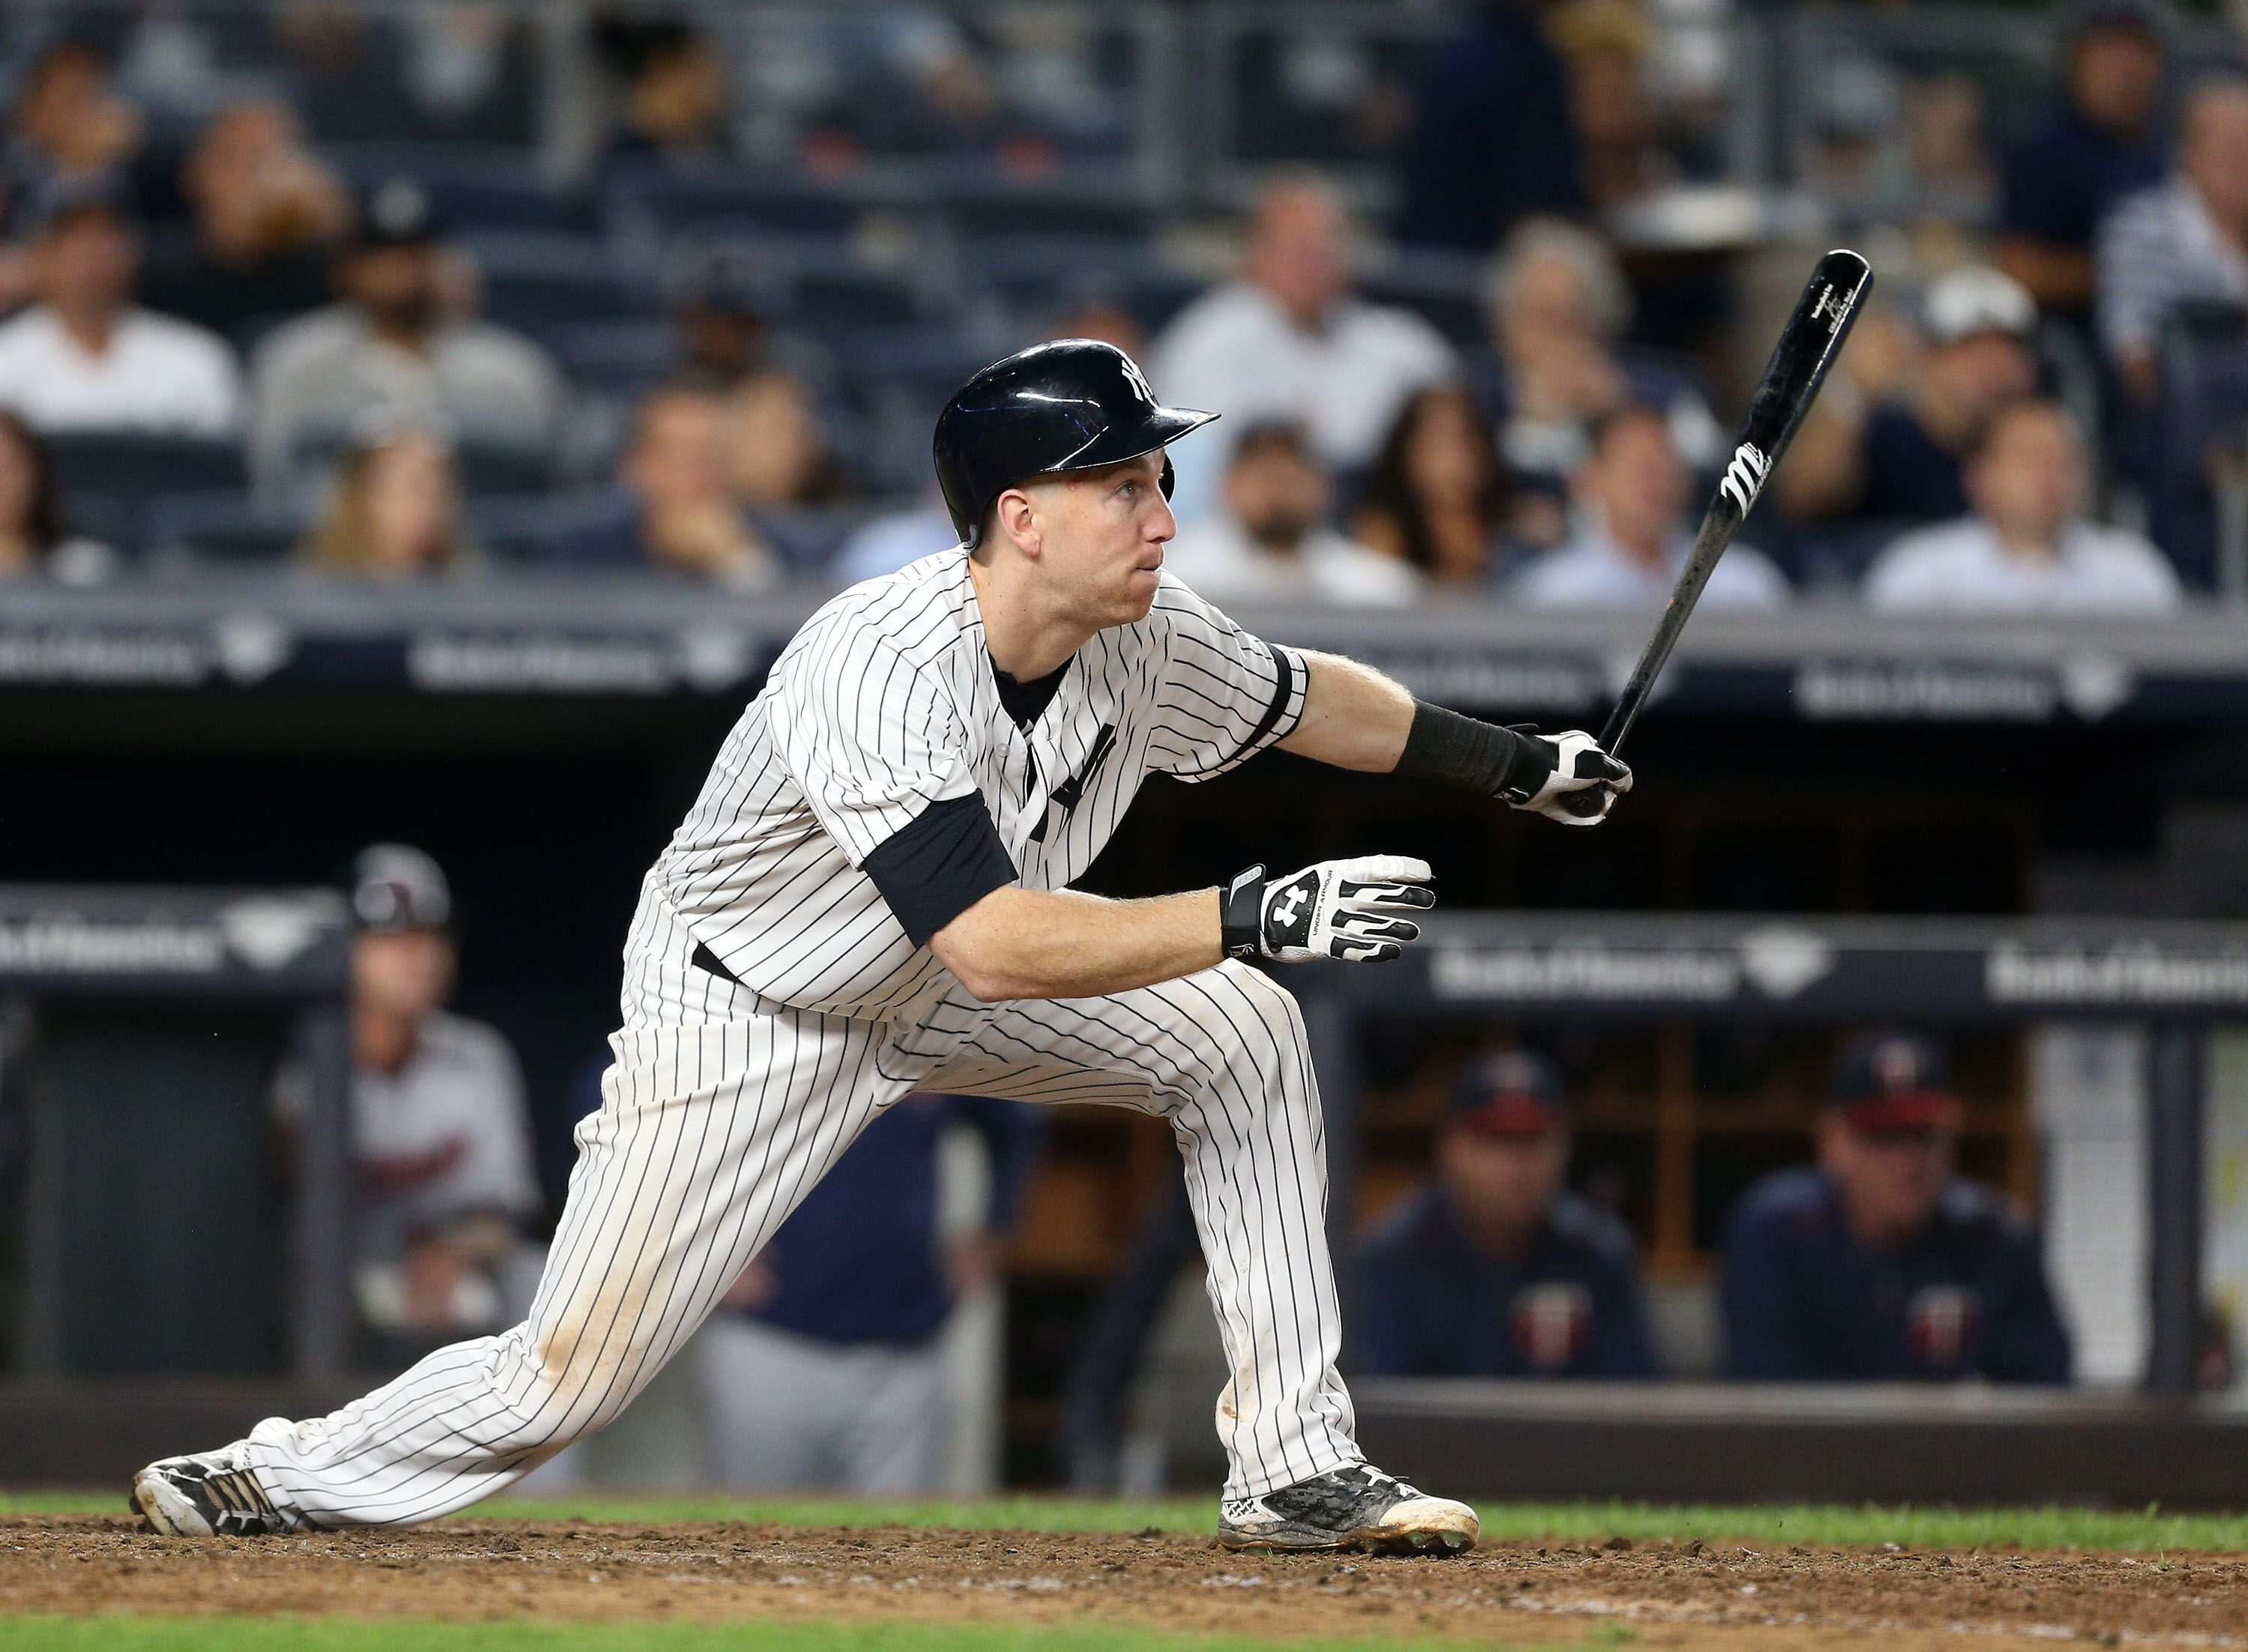 ALCS Game 3, Yankees vs. Astros: Highlights, recap and more